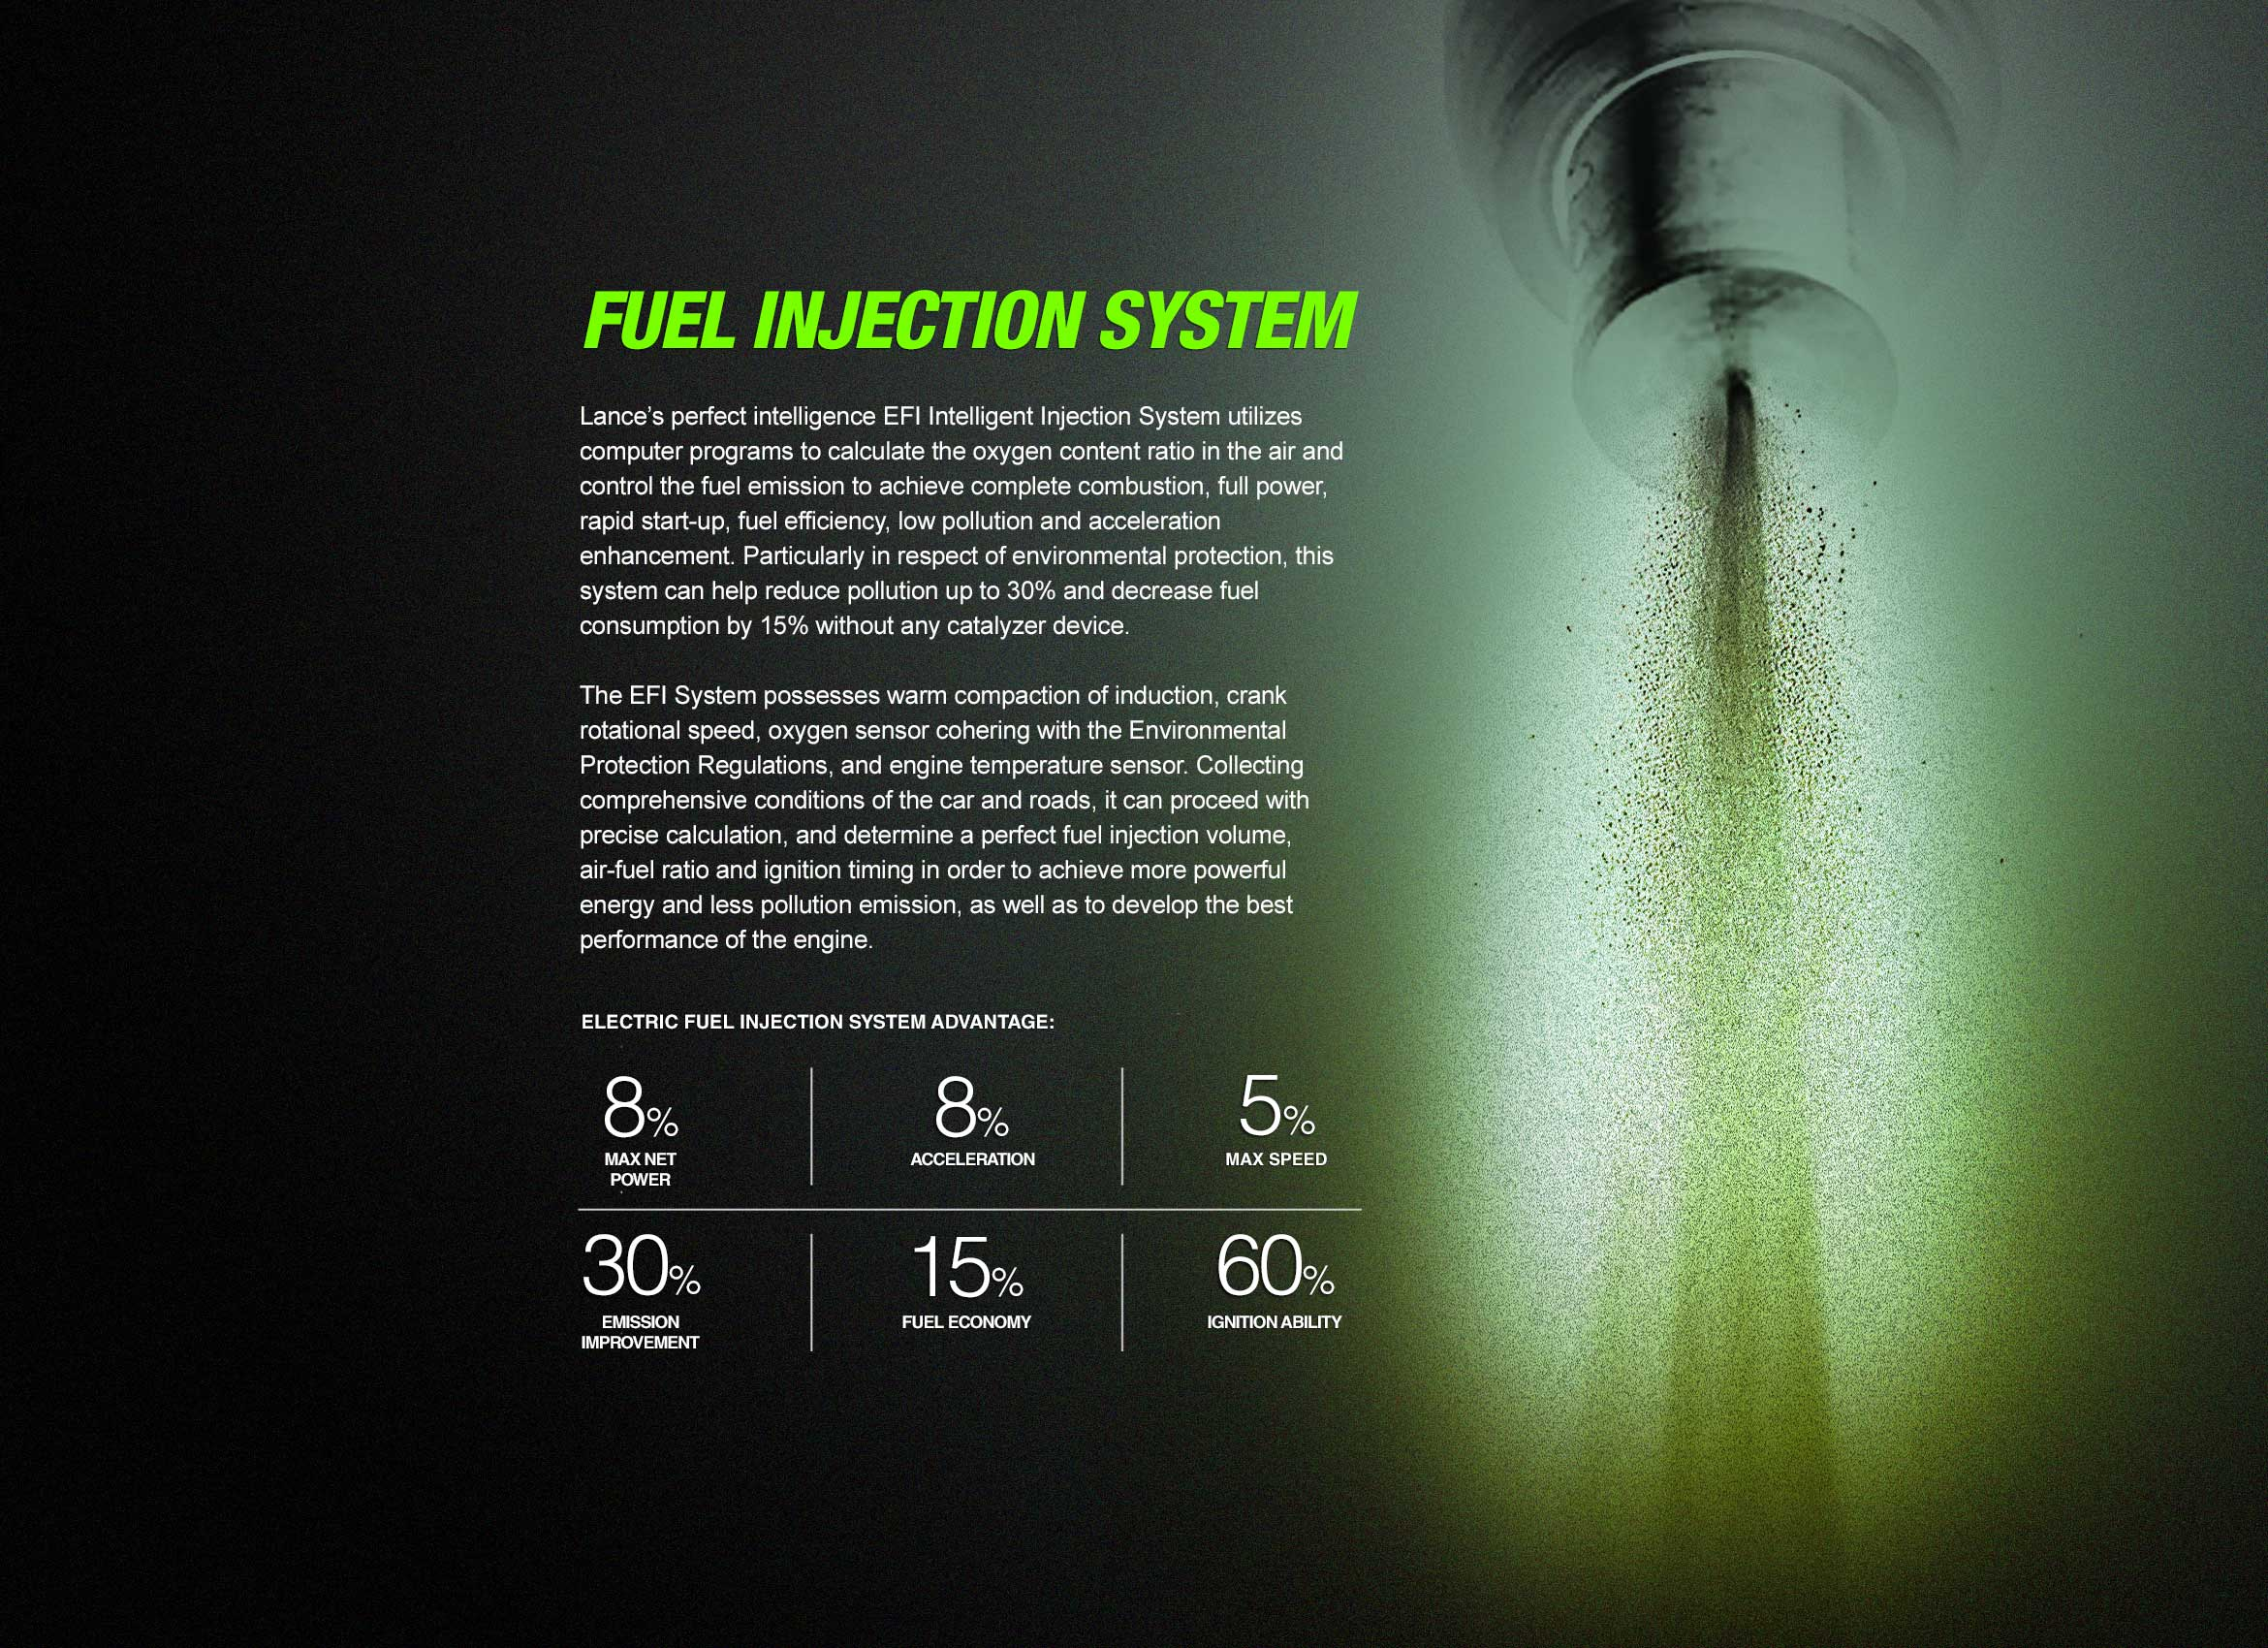 Electric Fuel Injection System        